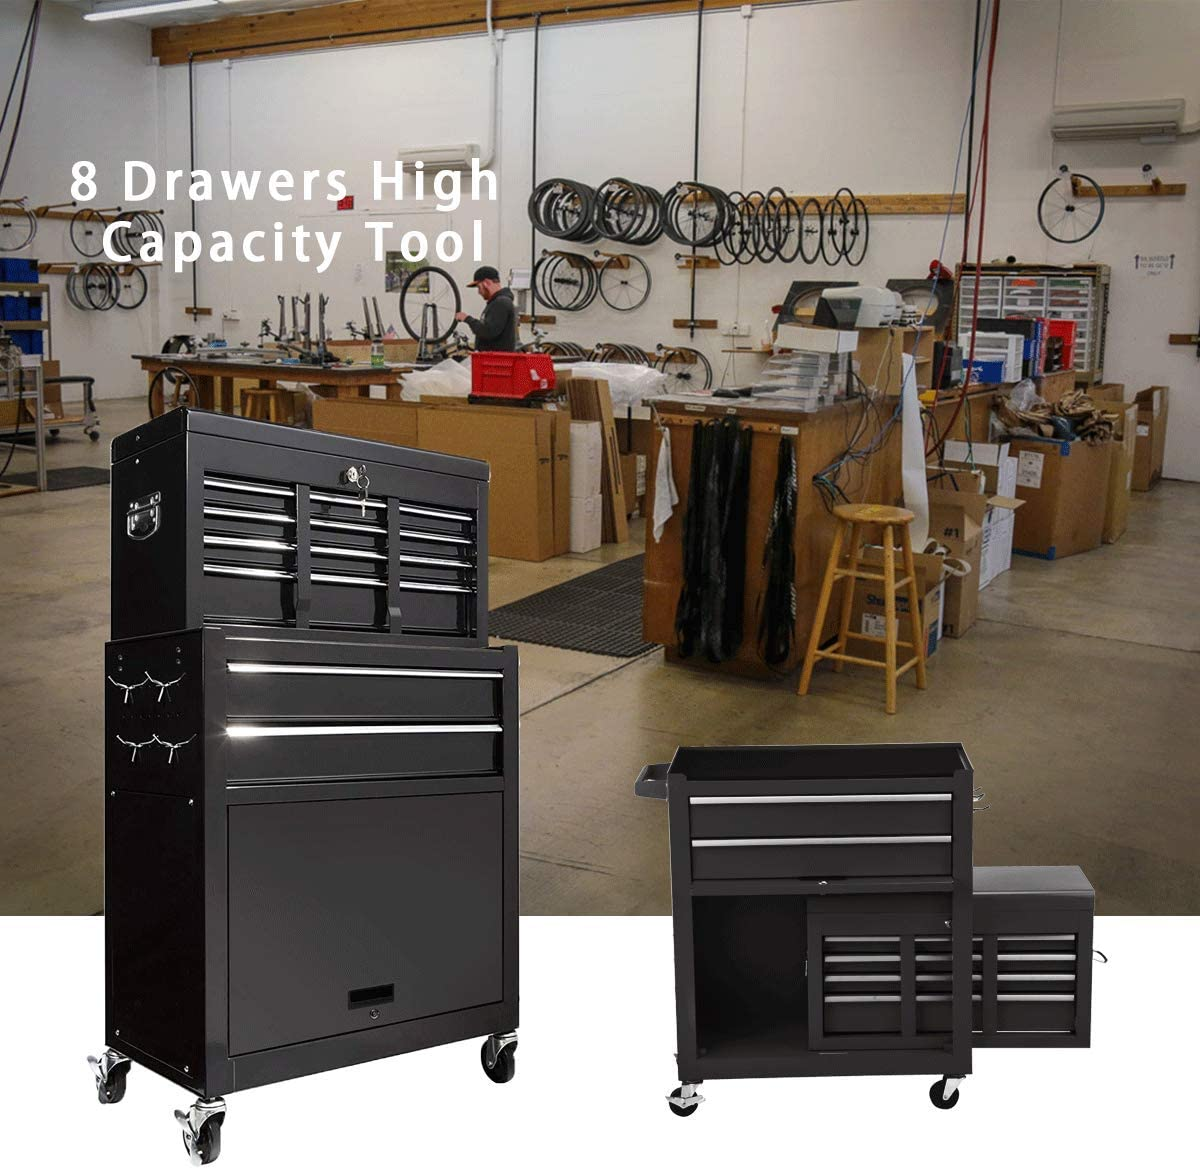 8-Drawer High Capacity Tool chest Tool Box,Rolling Tool Box,Big Tool Storage Cabinet and Tool Chest with 4 Wheels and Lockable Drawers Tool Chest for Garage and Warehouse BLACK TOOLBOX